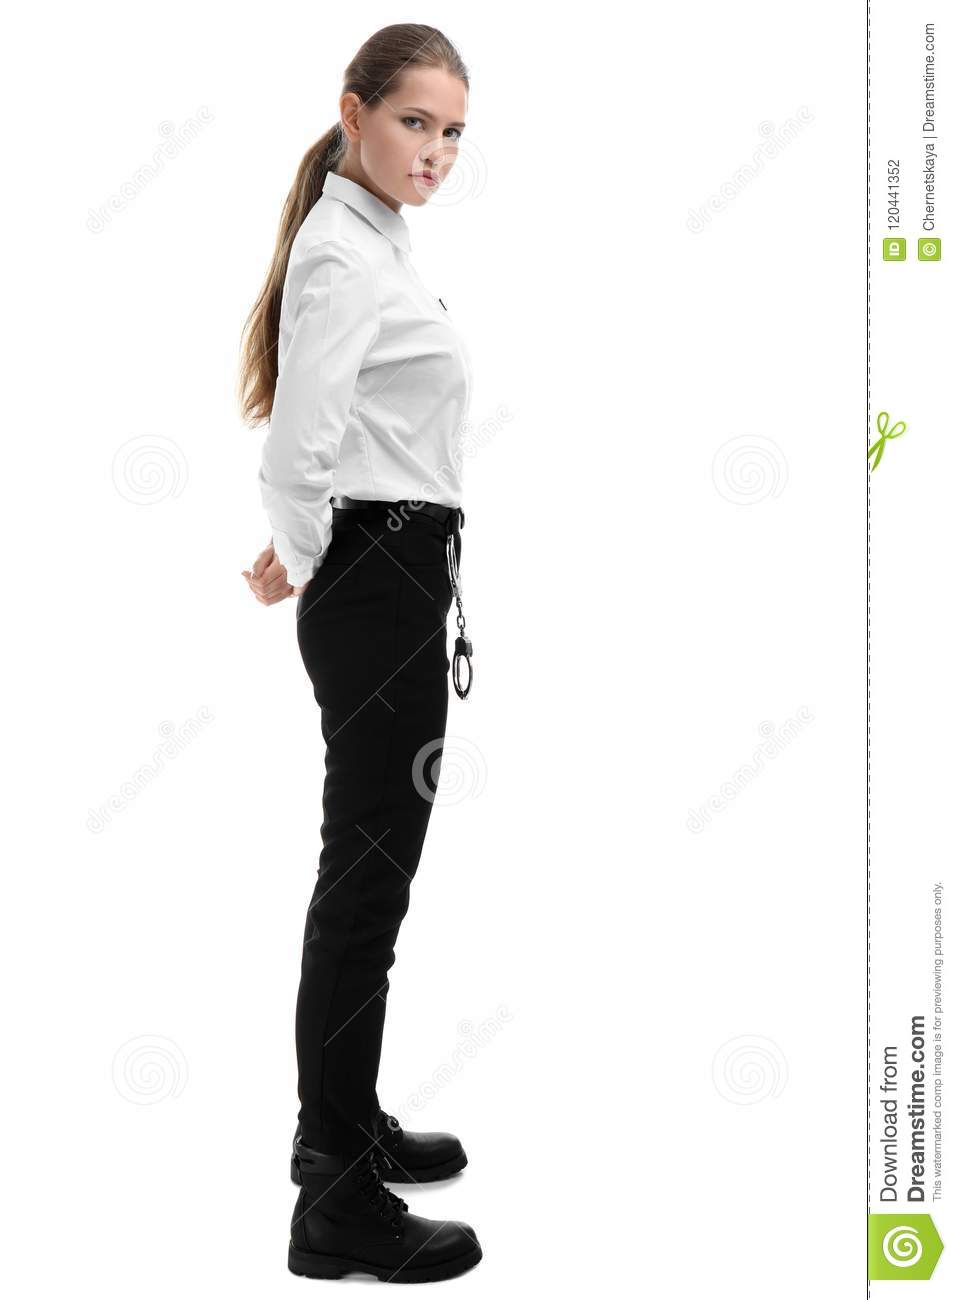 Female Security Guard In Uniform Stock Photo - Image of